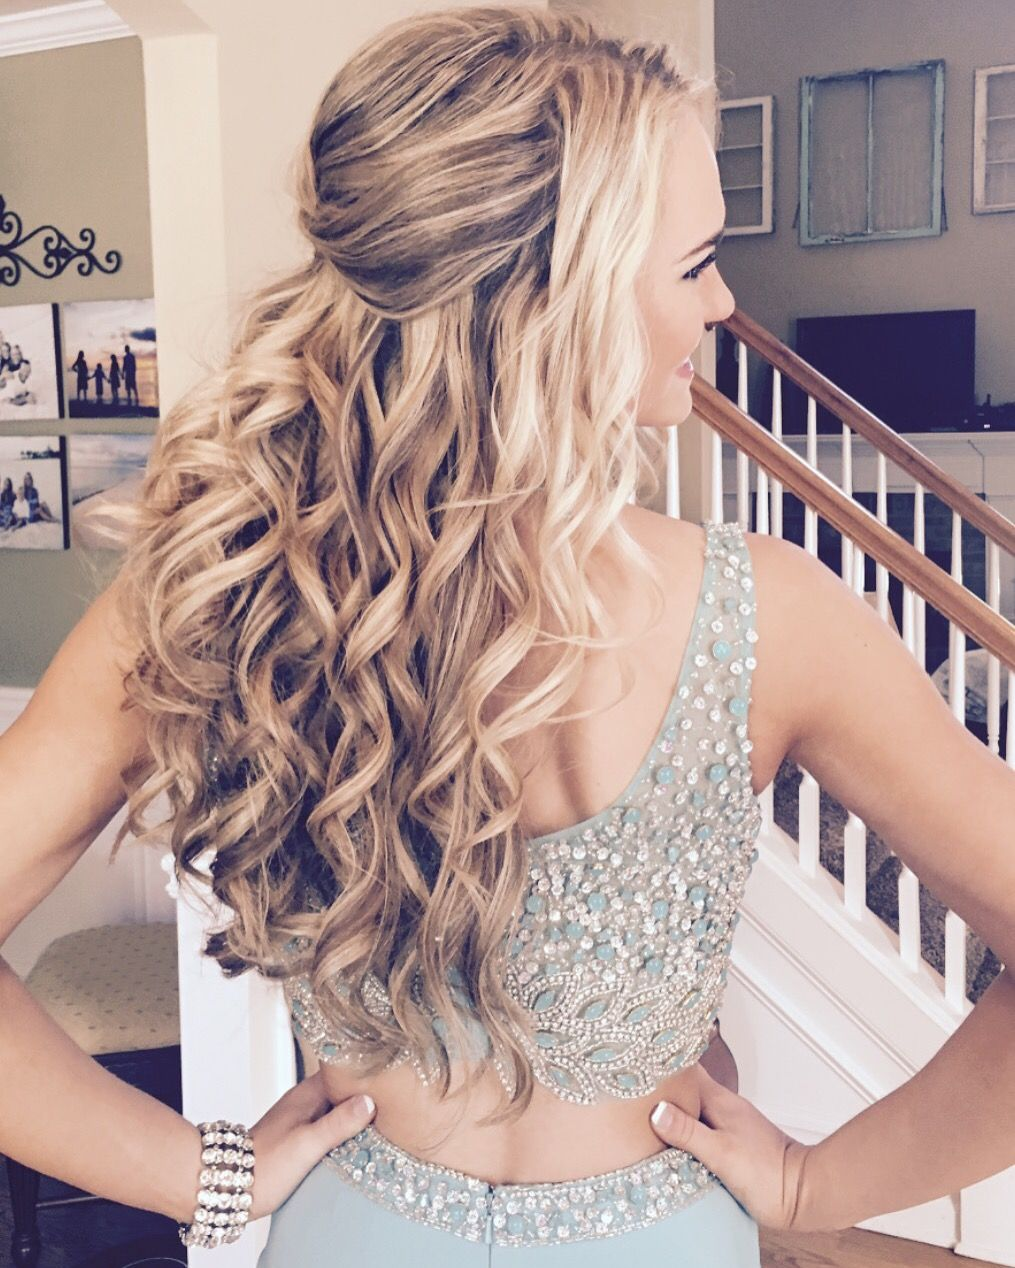 Perfect Down Do Formal Hair Style By Formalfaces Com Formal Hairstyles Long Hair Styles Hair Styles